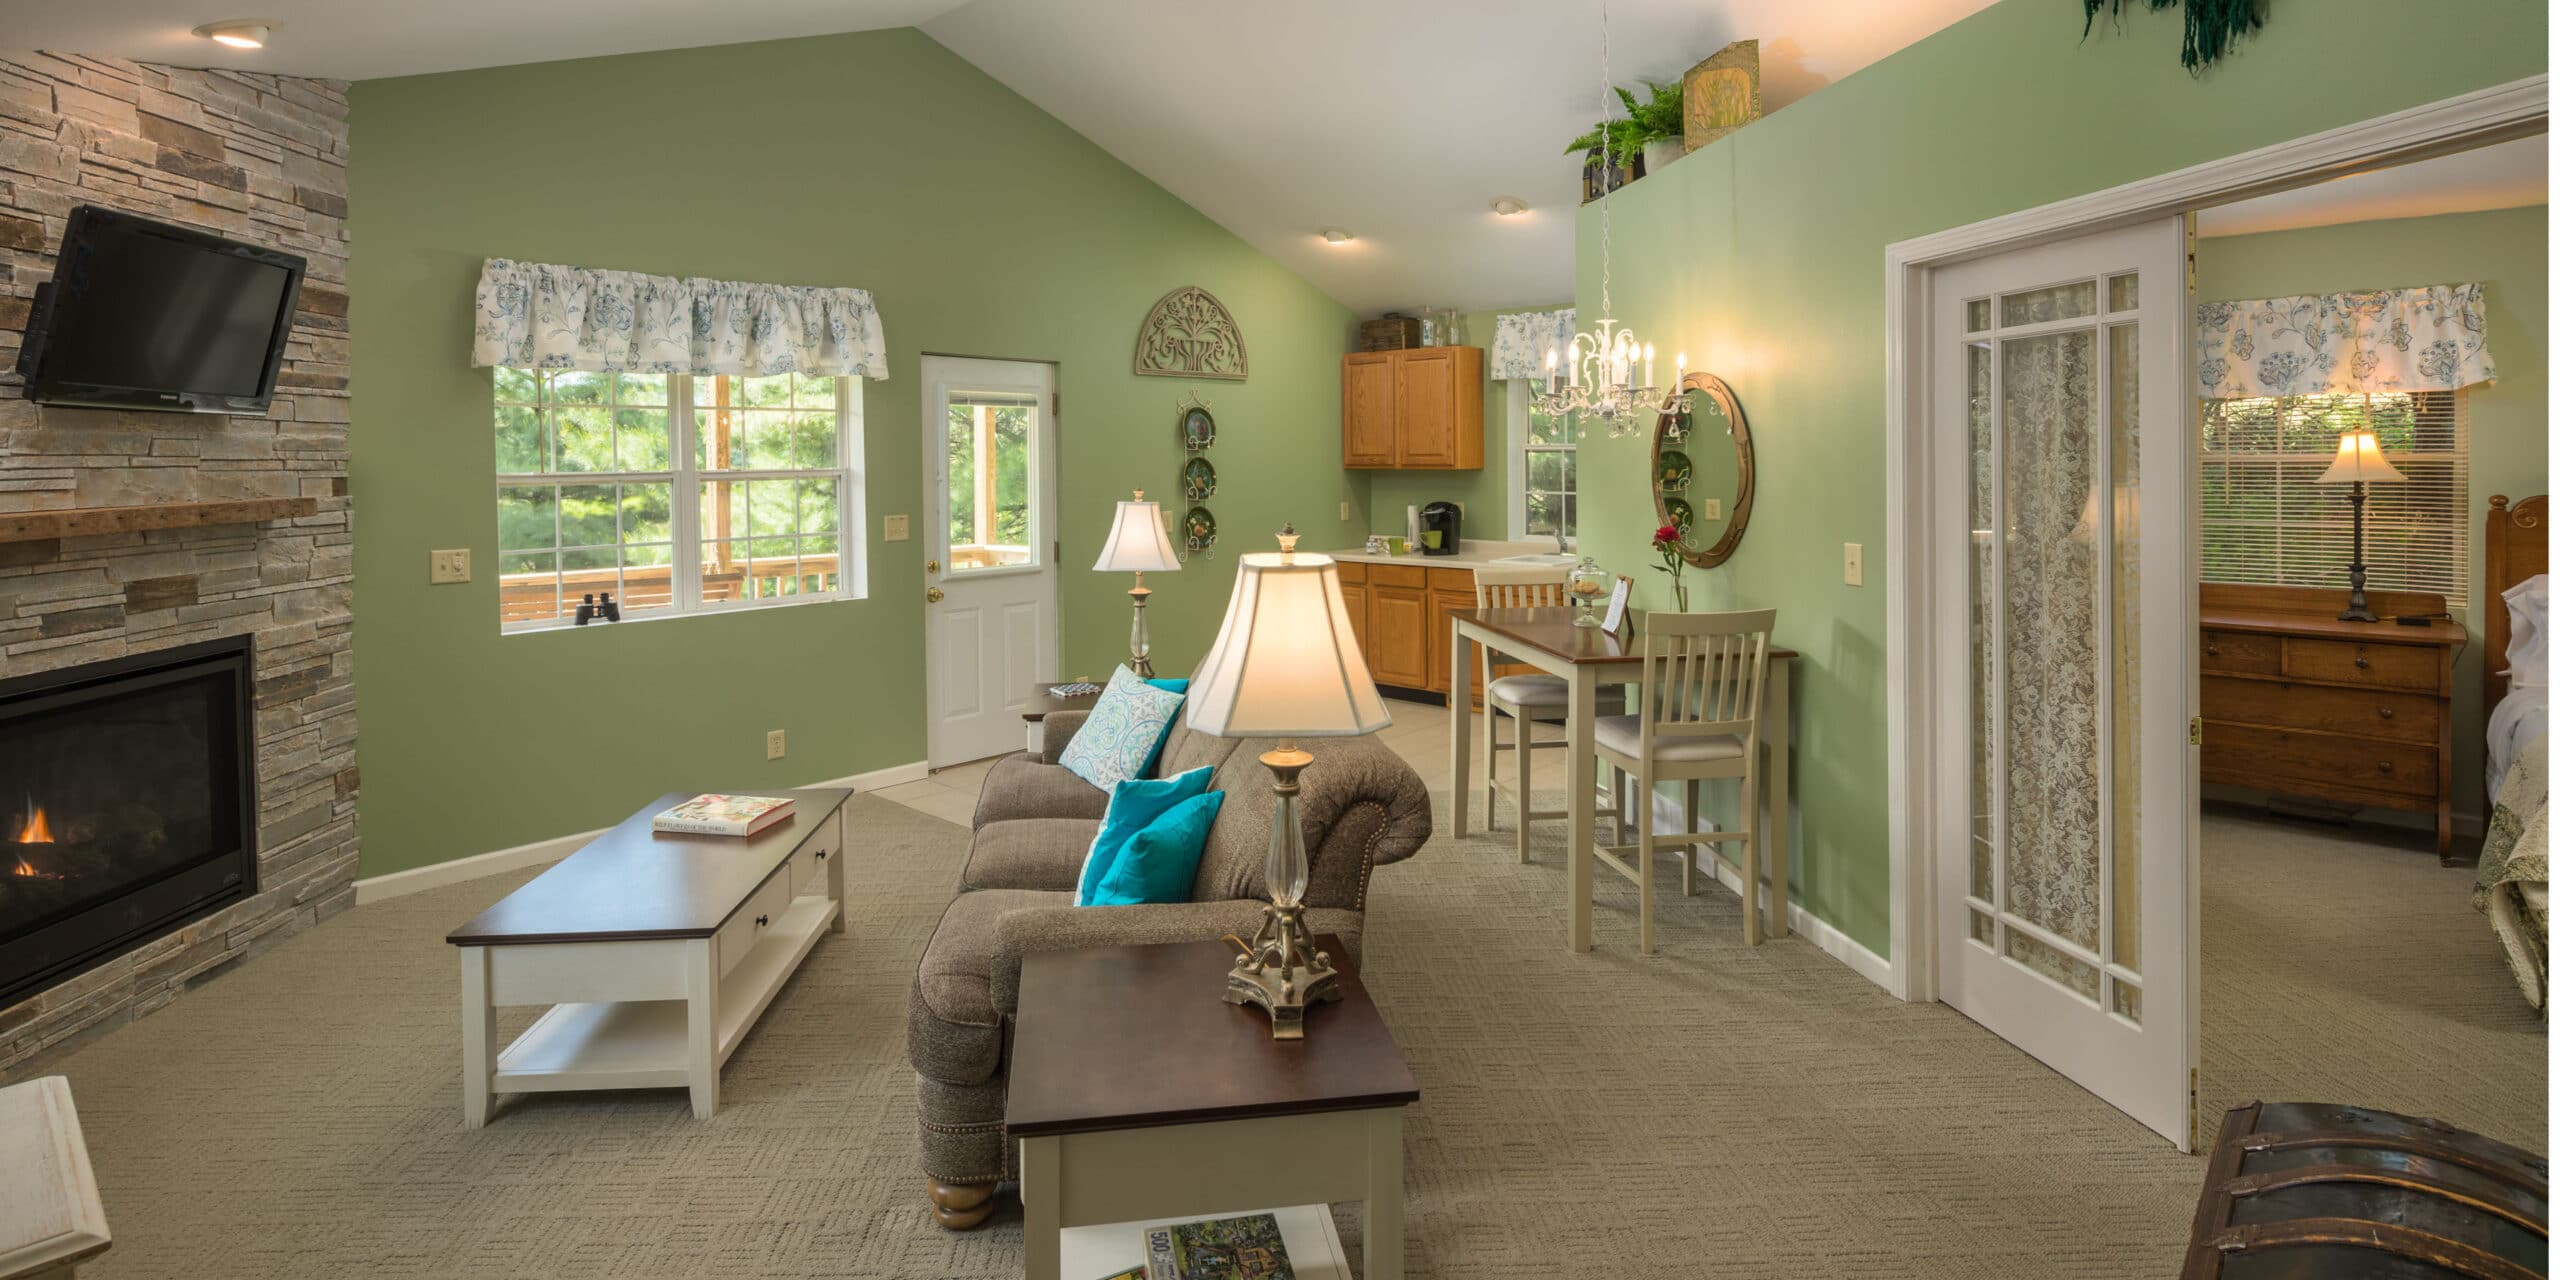 light green walled room with stone fireplace, couch, coffee tables, dining table and kitchenette